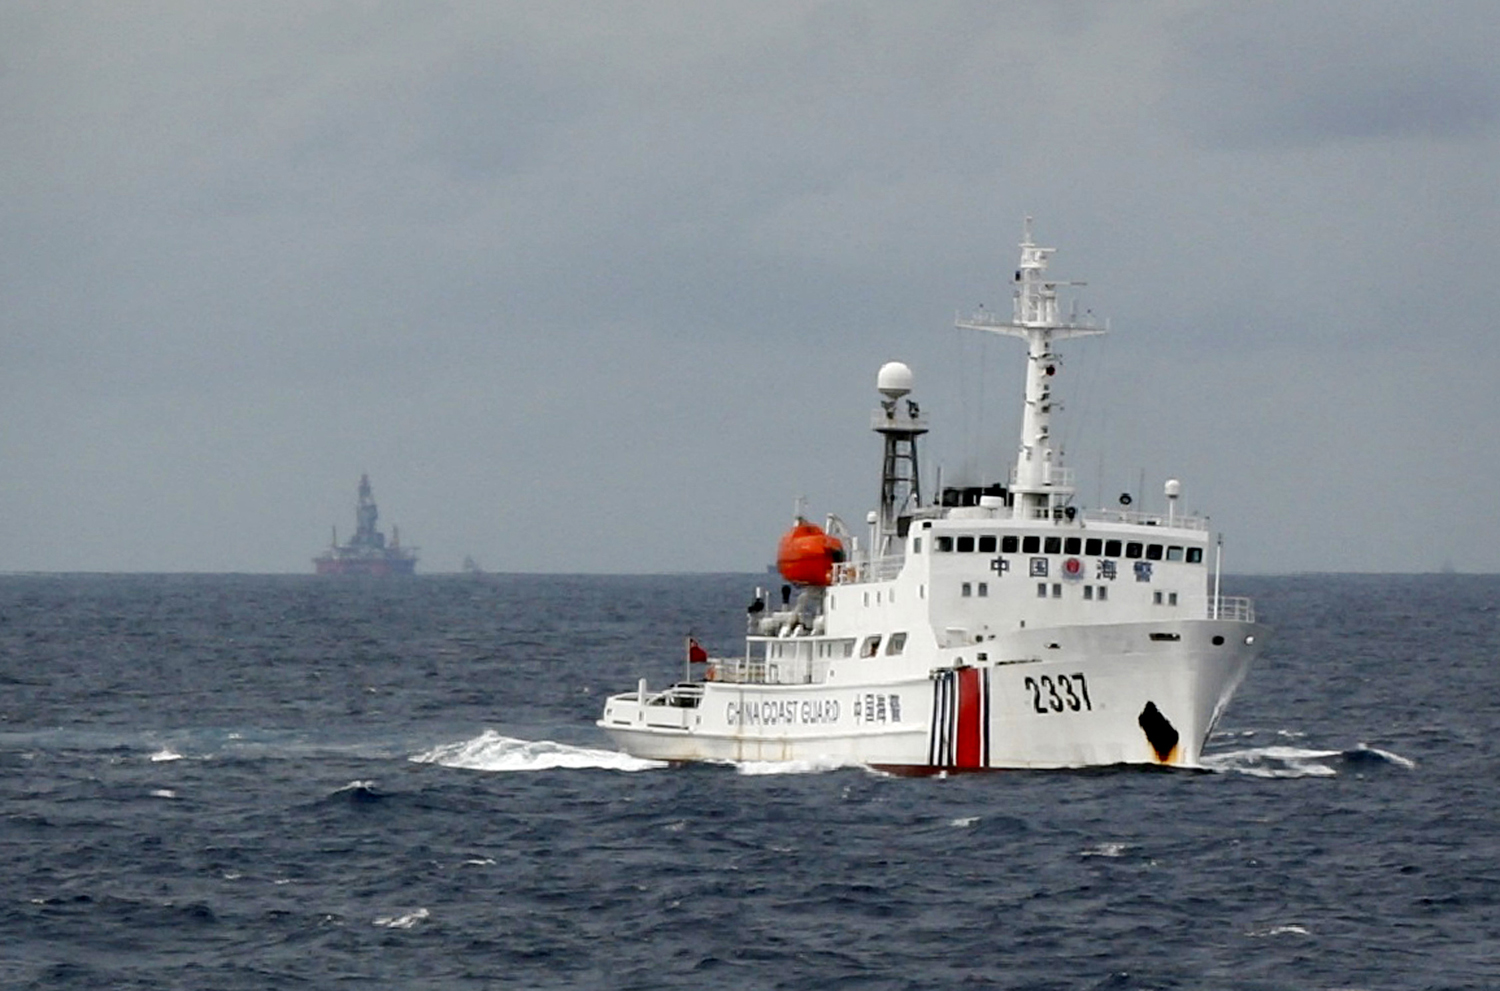 A Chinese coast-guard vessel passes near the Chinese oil rig Haiyang Shiyou 981 in the South China Sea, about 210 km (130 miles) from the coast of Vietnam on June 13, 2014.